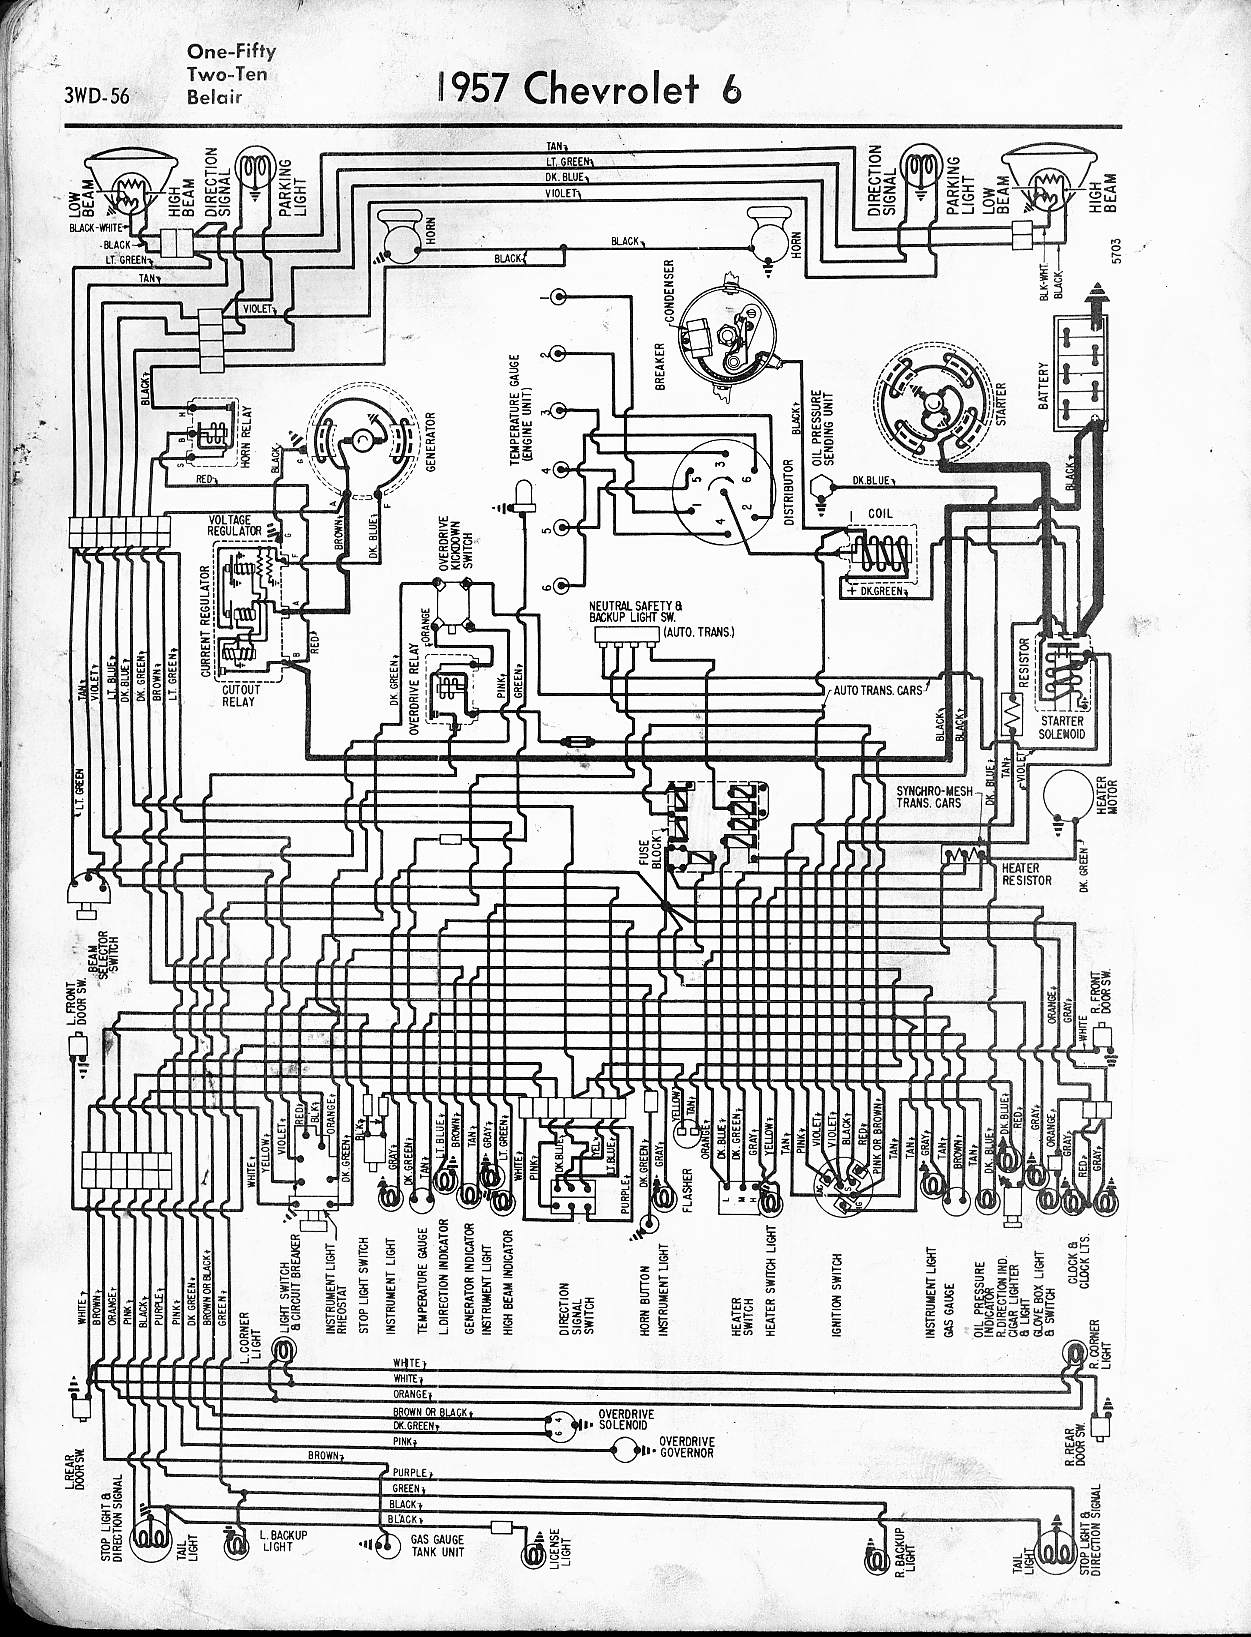 MWireChev57_3WD 056 57 65 chevy wiring diagrams 57 chevy truck wiring harness at soozxer.org